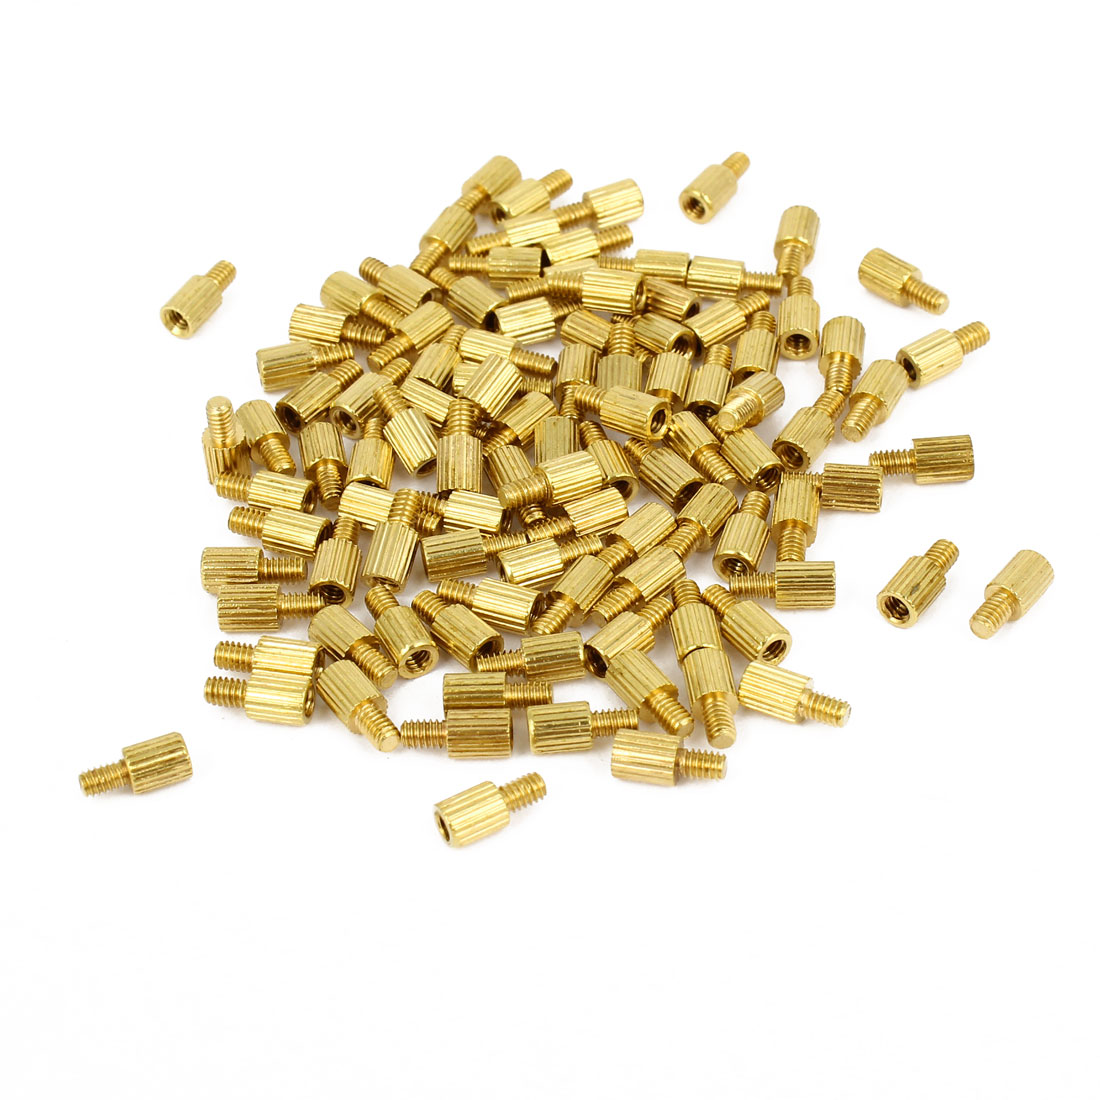 100 Pcs M2 Female Thread Cylindrical Brass Stand-off Support M2x4mm